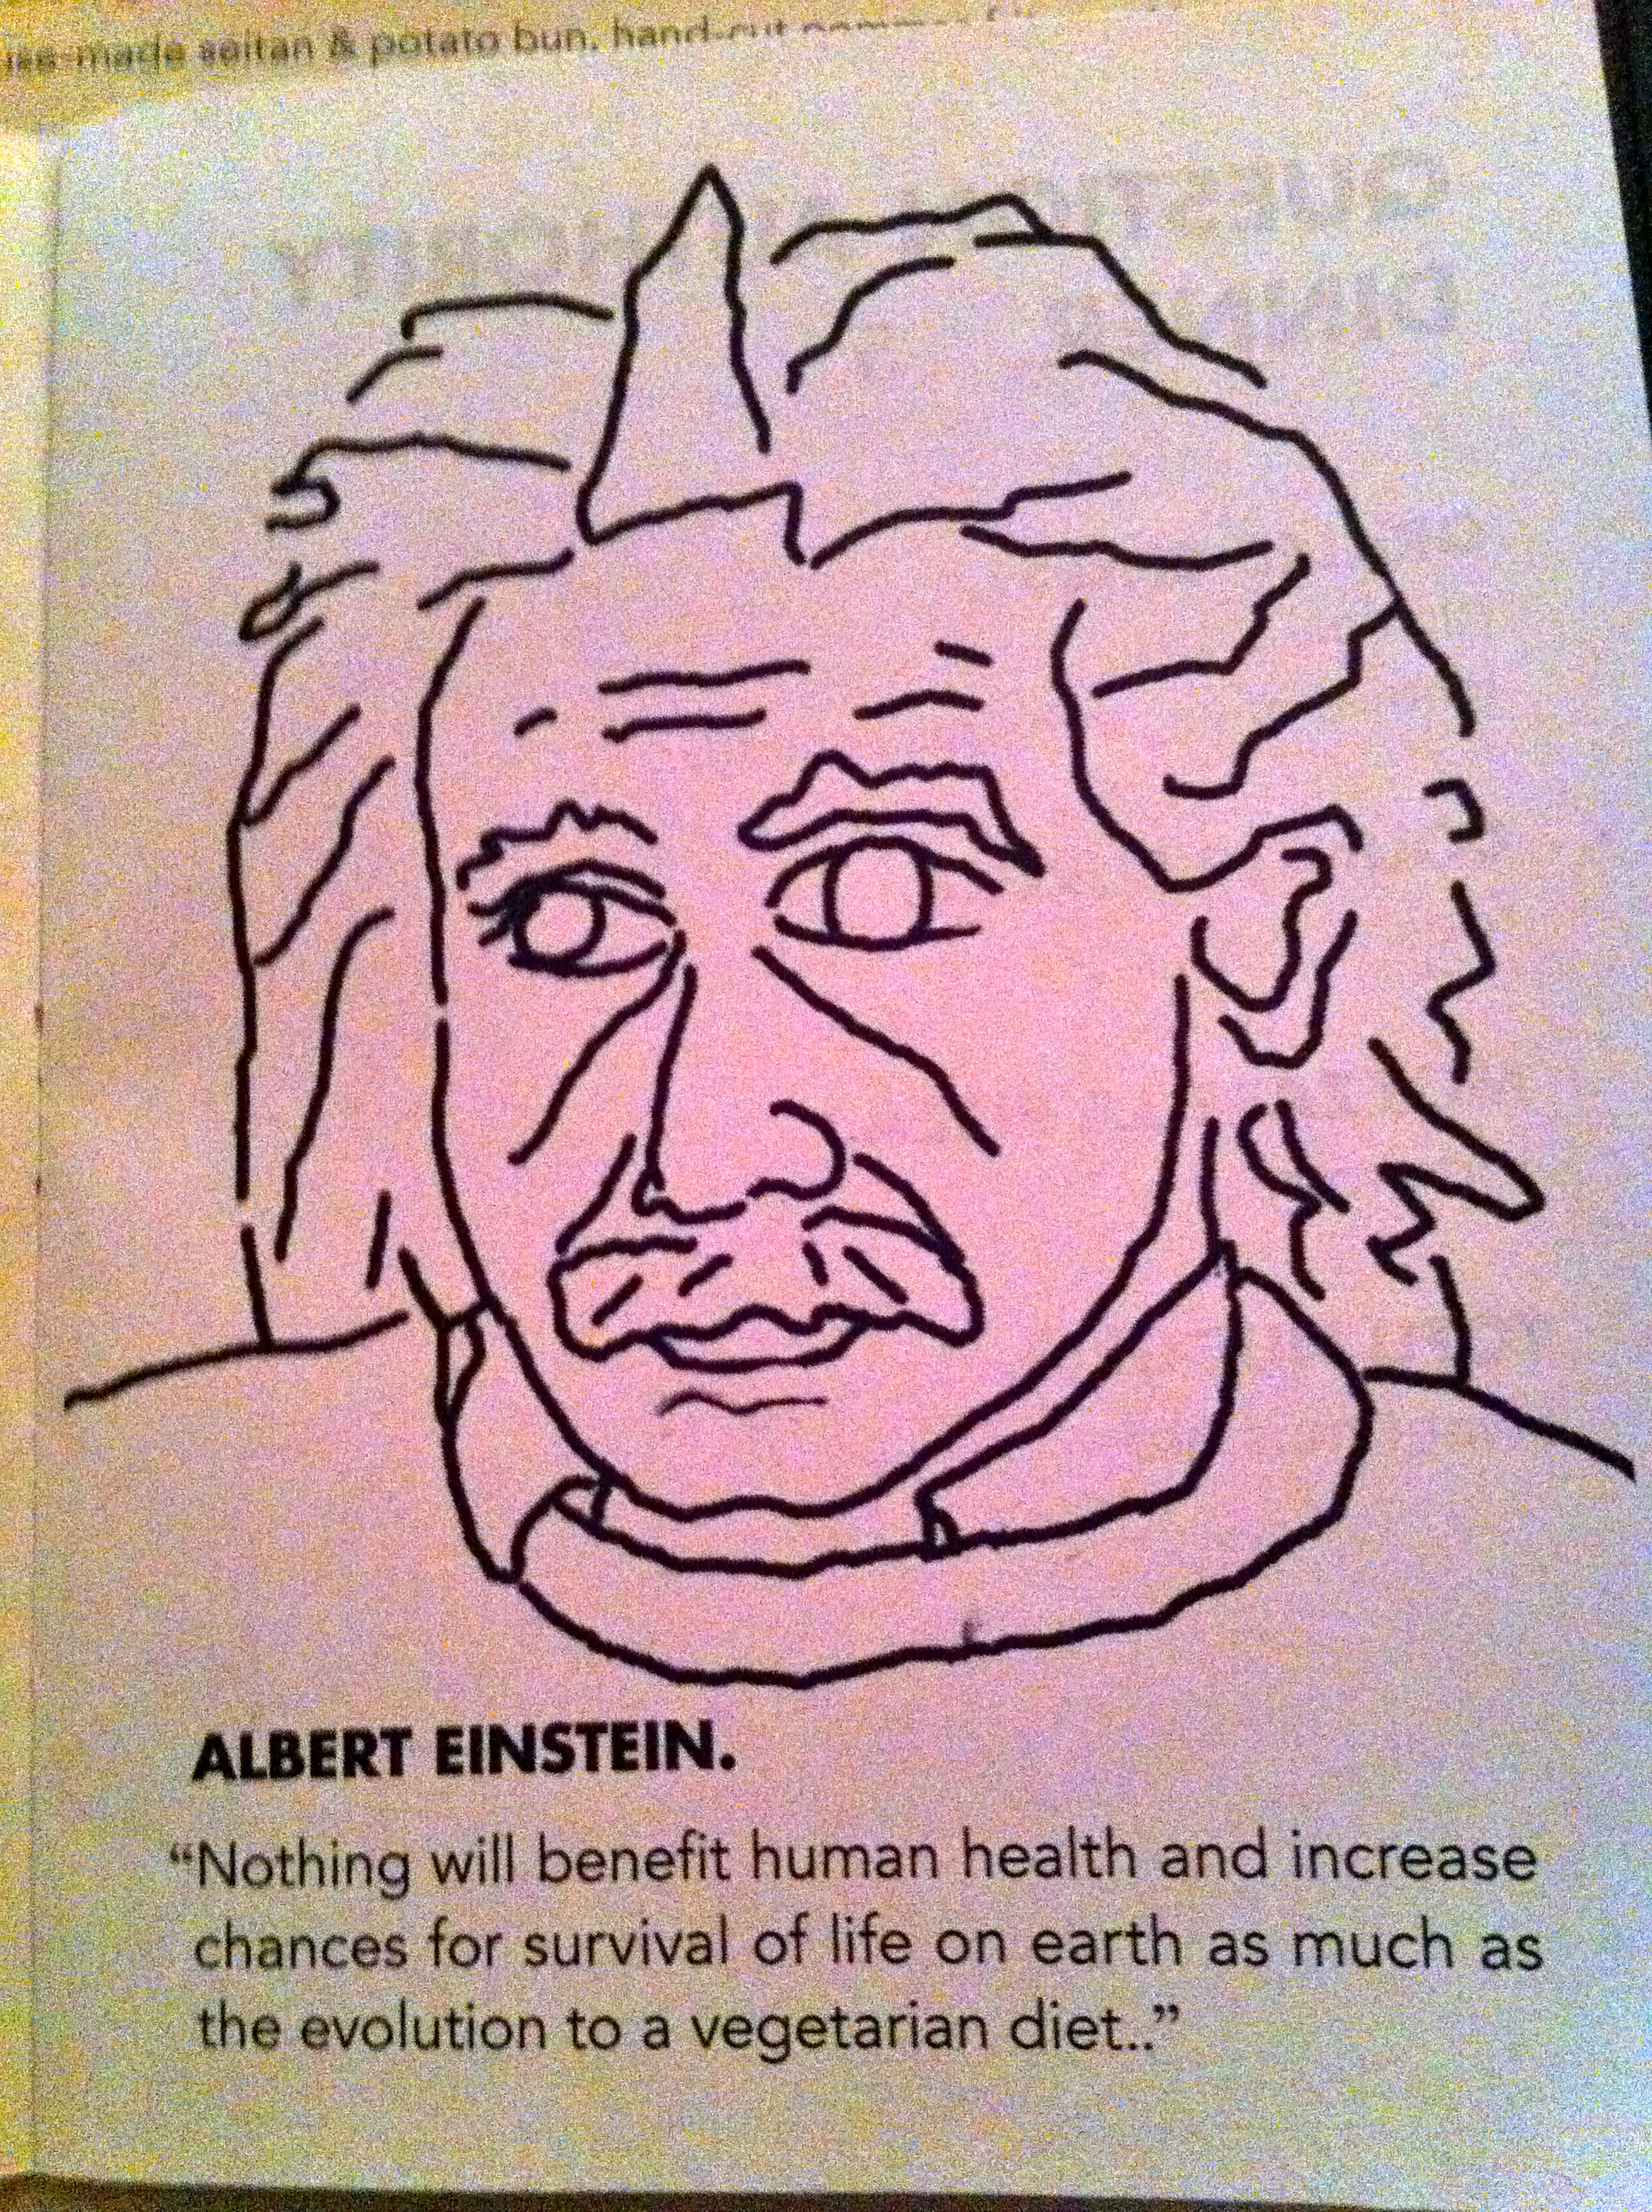 Einstein was a vegetarian, or a vegan!